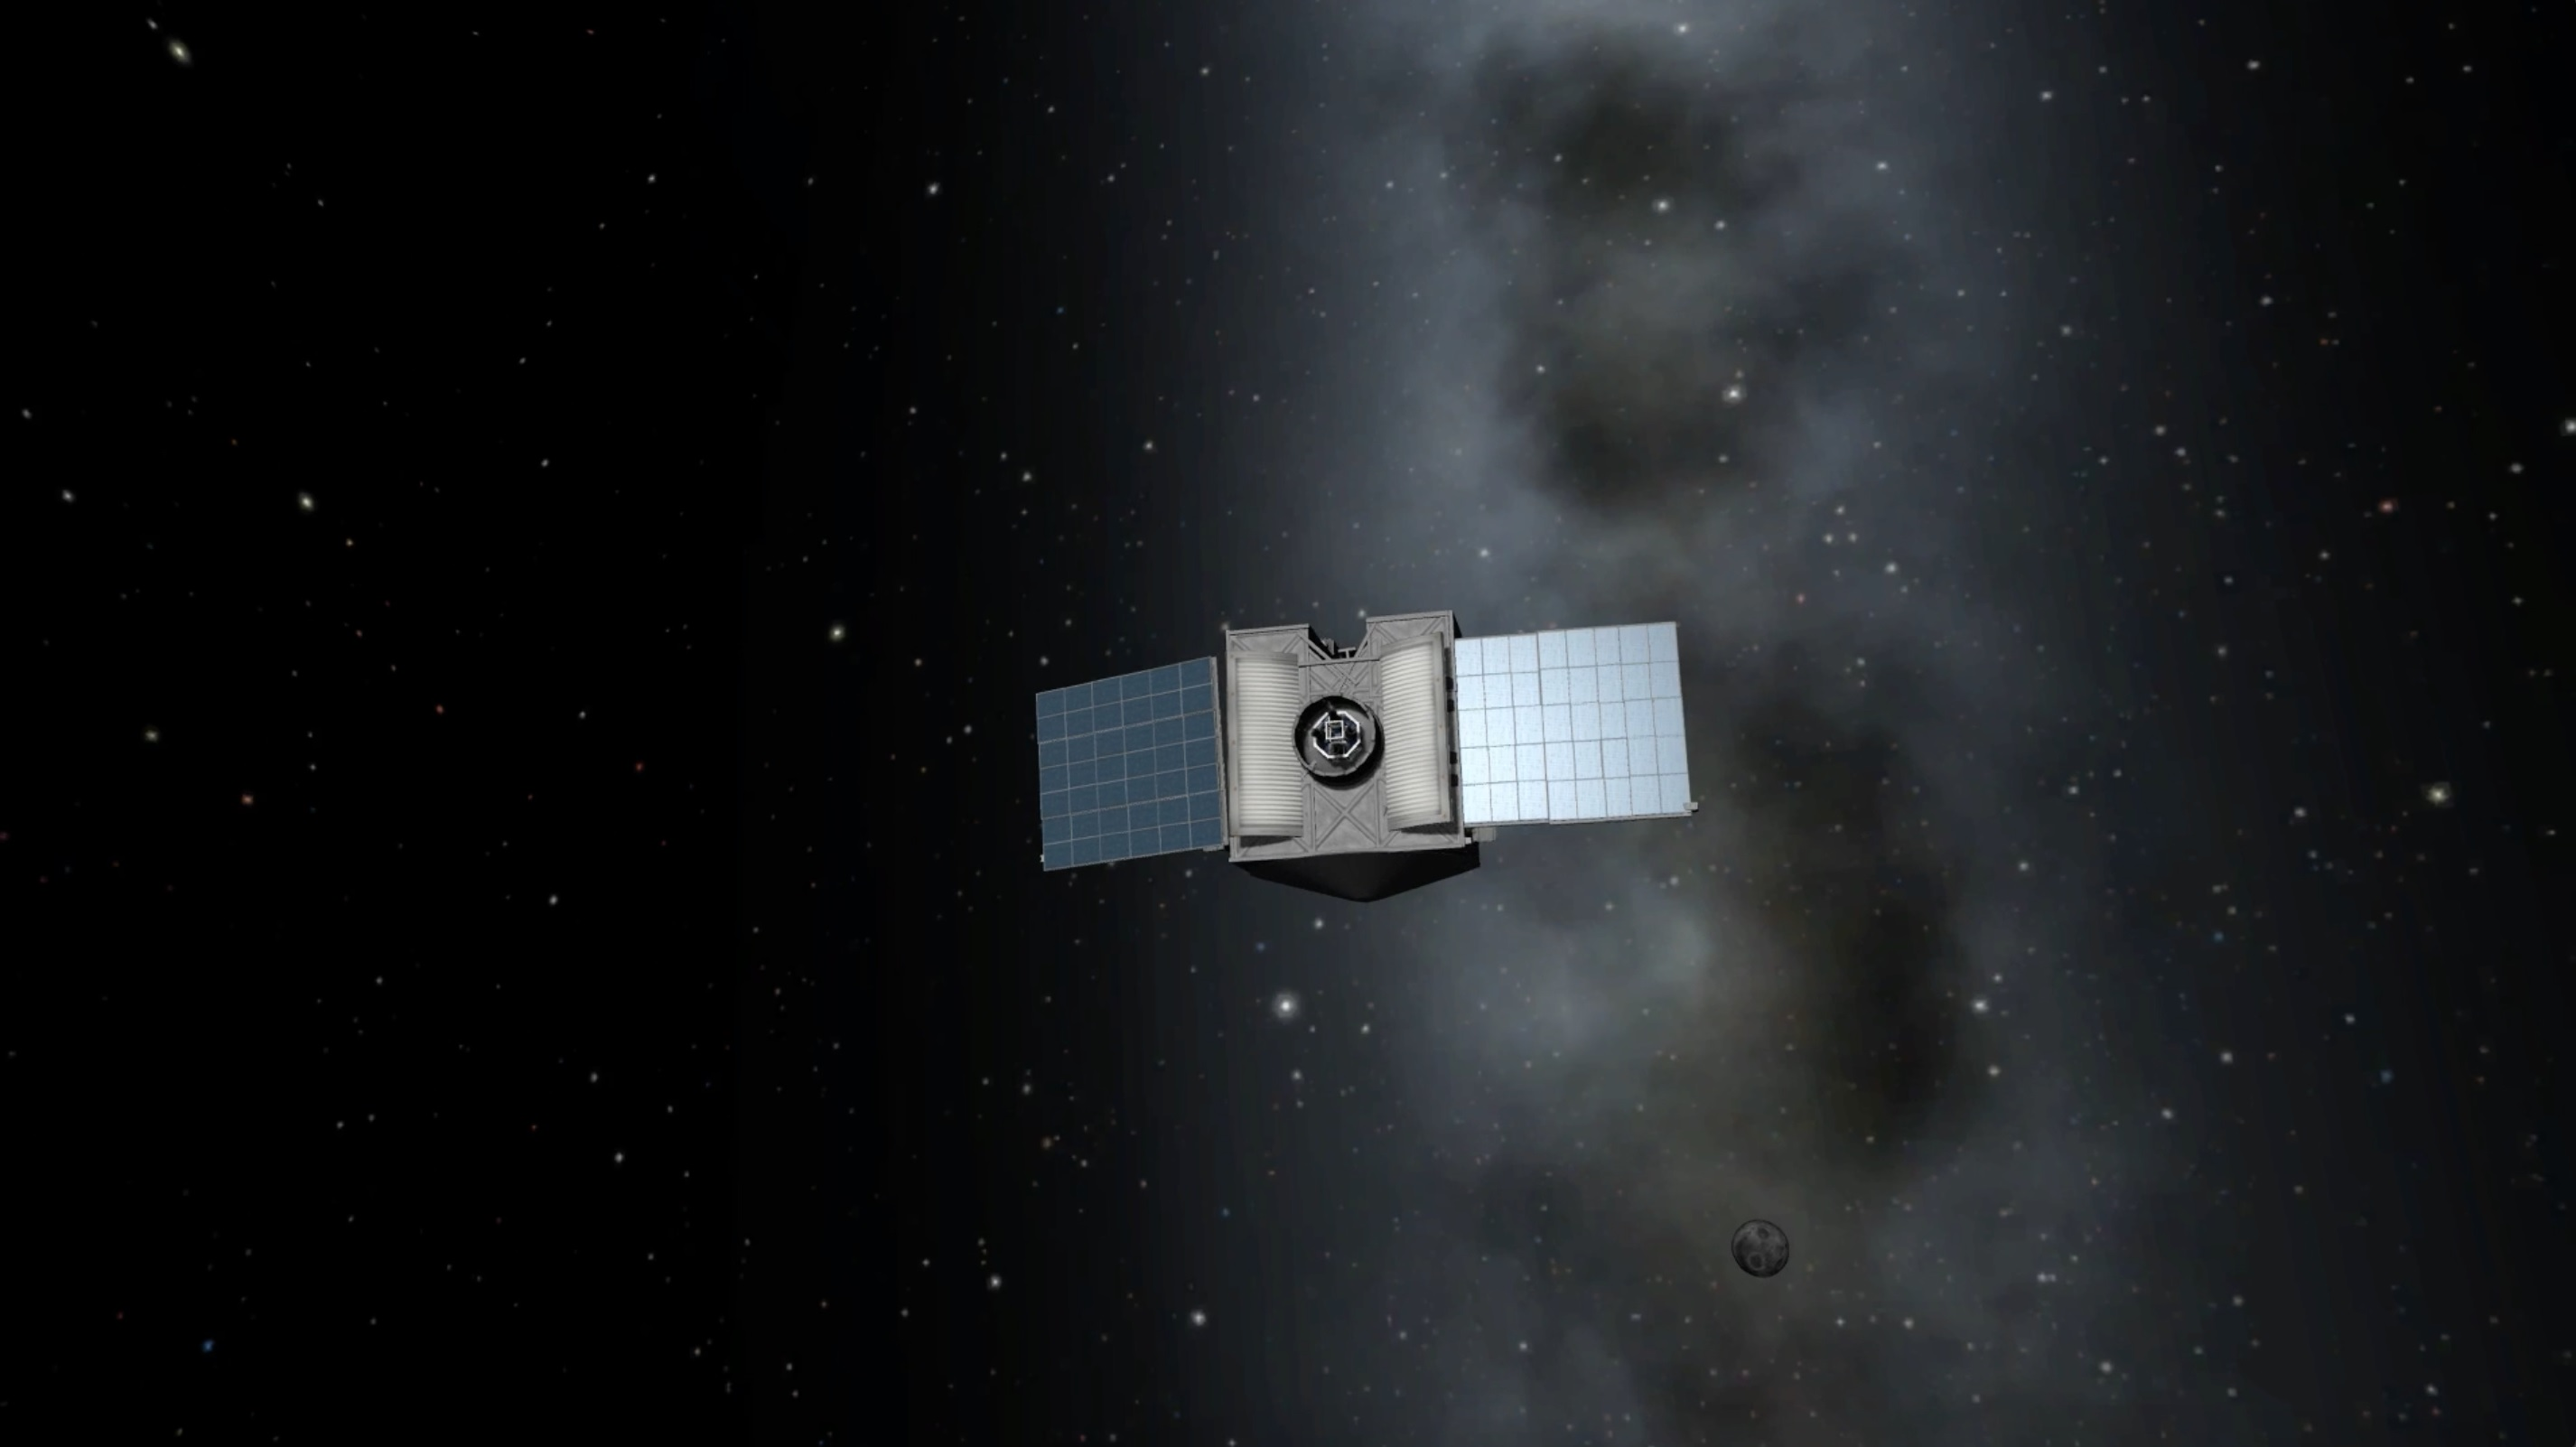 Video Game Challenge: Players Recreate NASA Asteroid Mission in 'Kerbal Space Program'